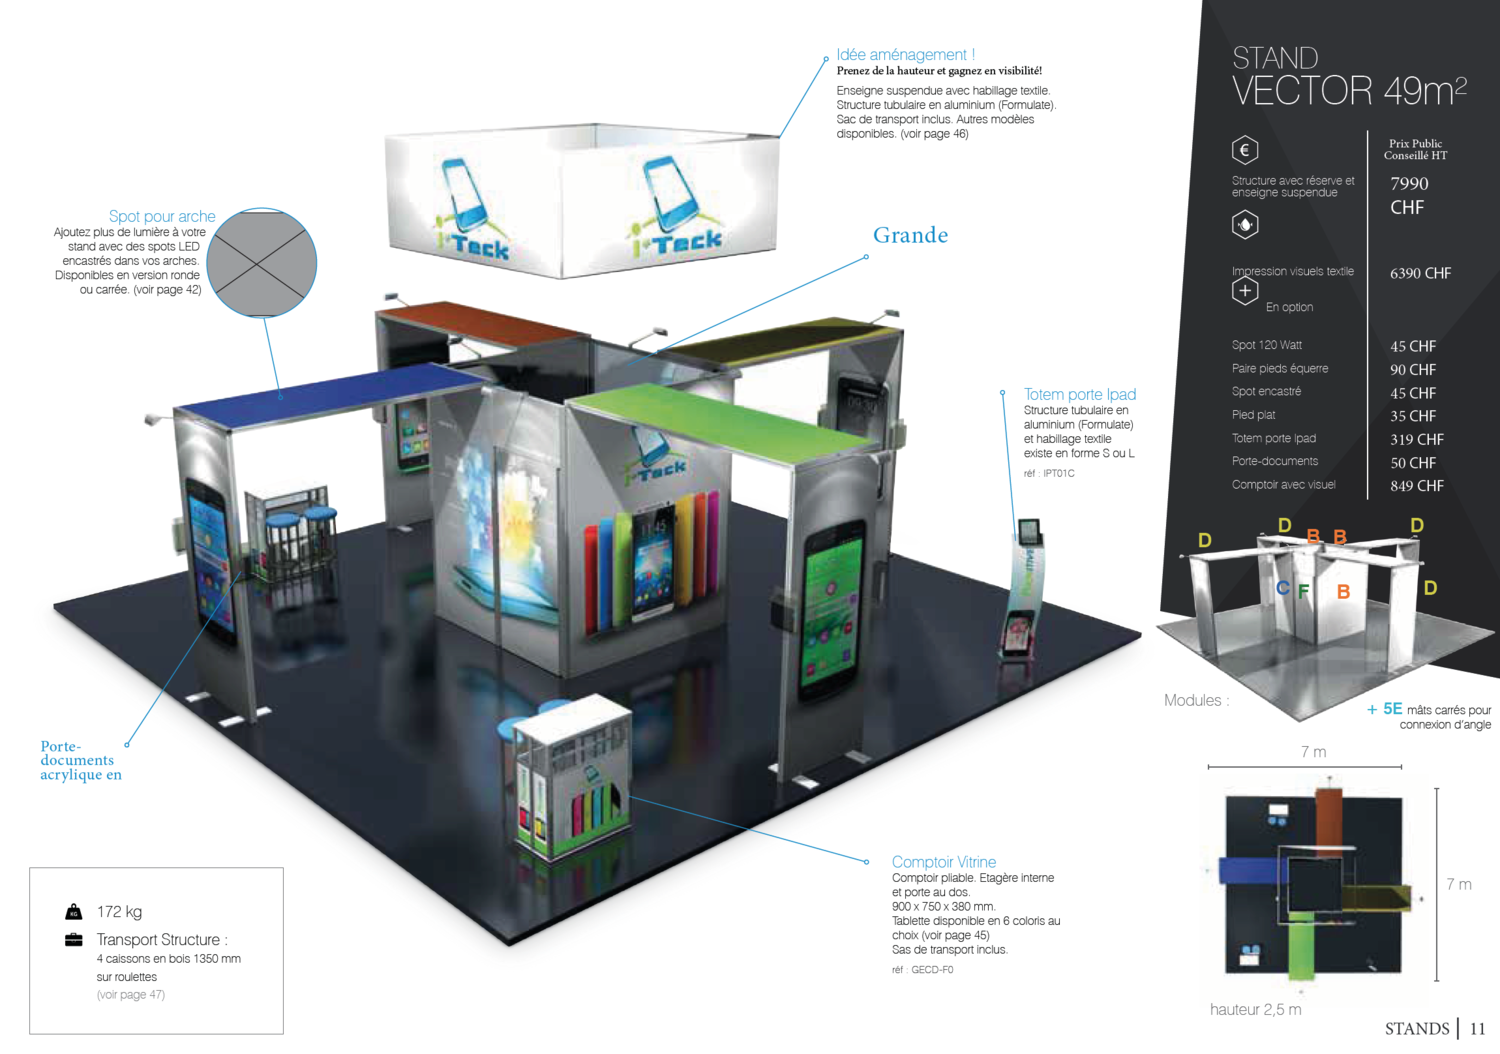 Stand Vector 49m2